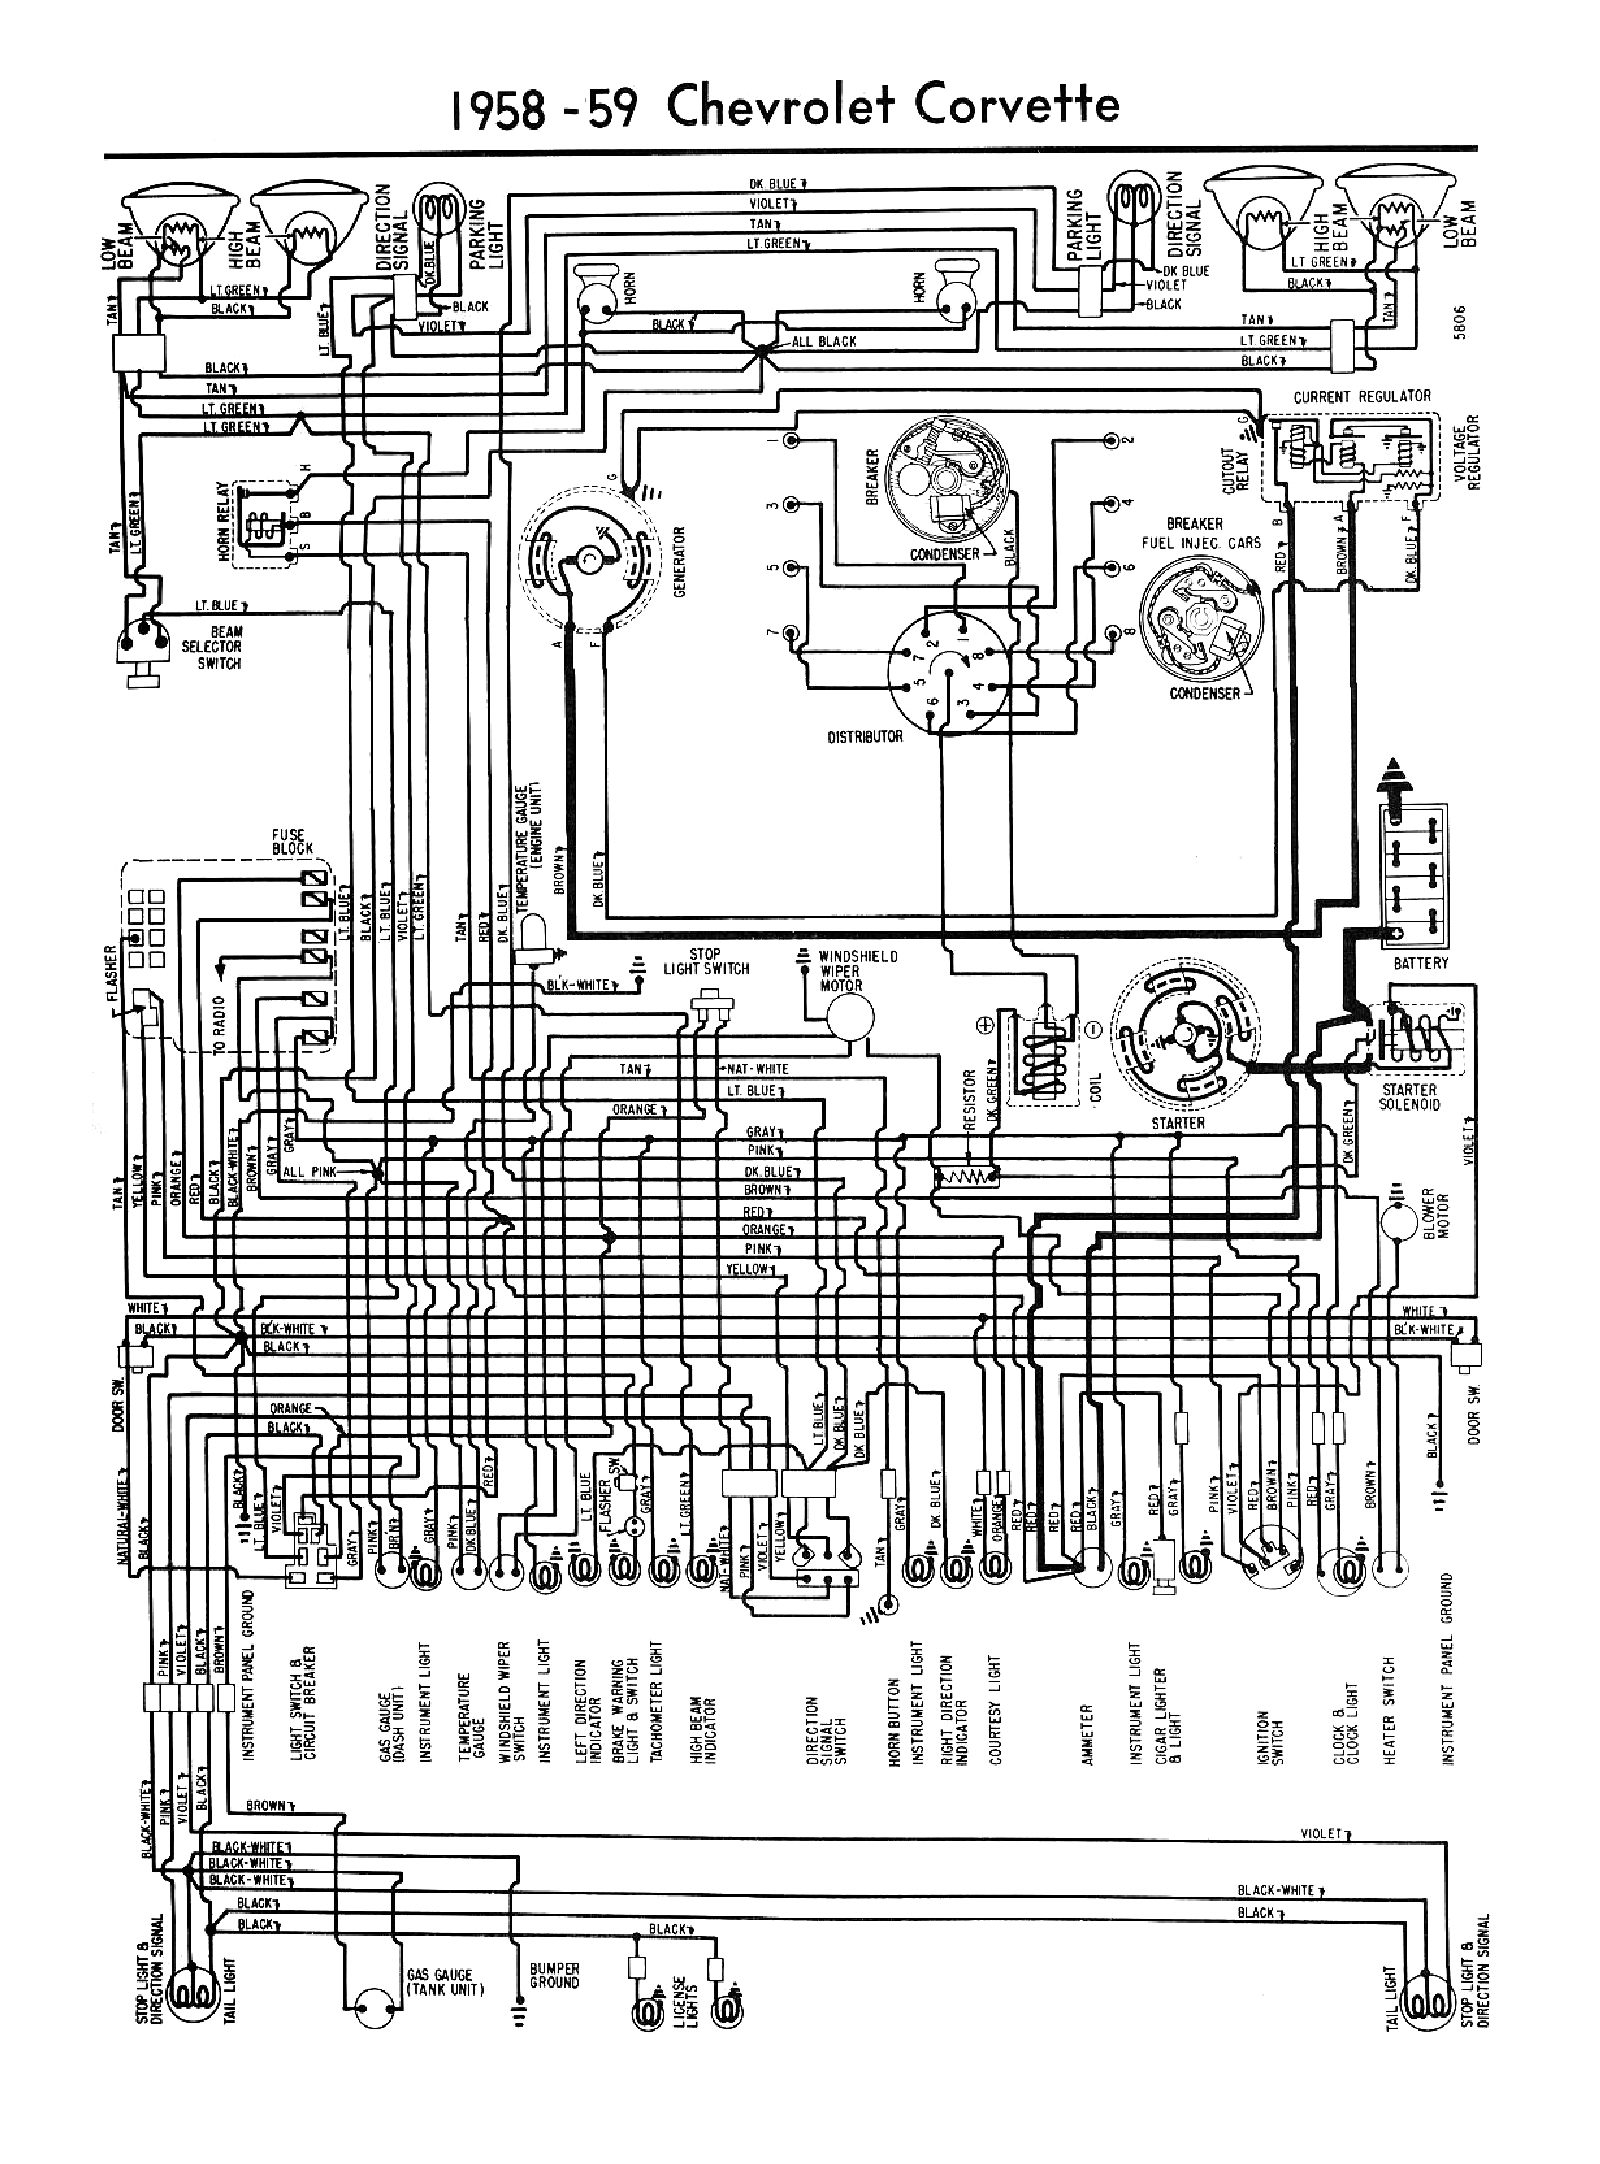 1974 corvette fuse box diagram block and schematic diagrams u2022 rh lazysupply co 1973 corvette dash wiring diagram 1973 corvette ignition wiring diagram